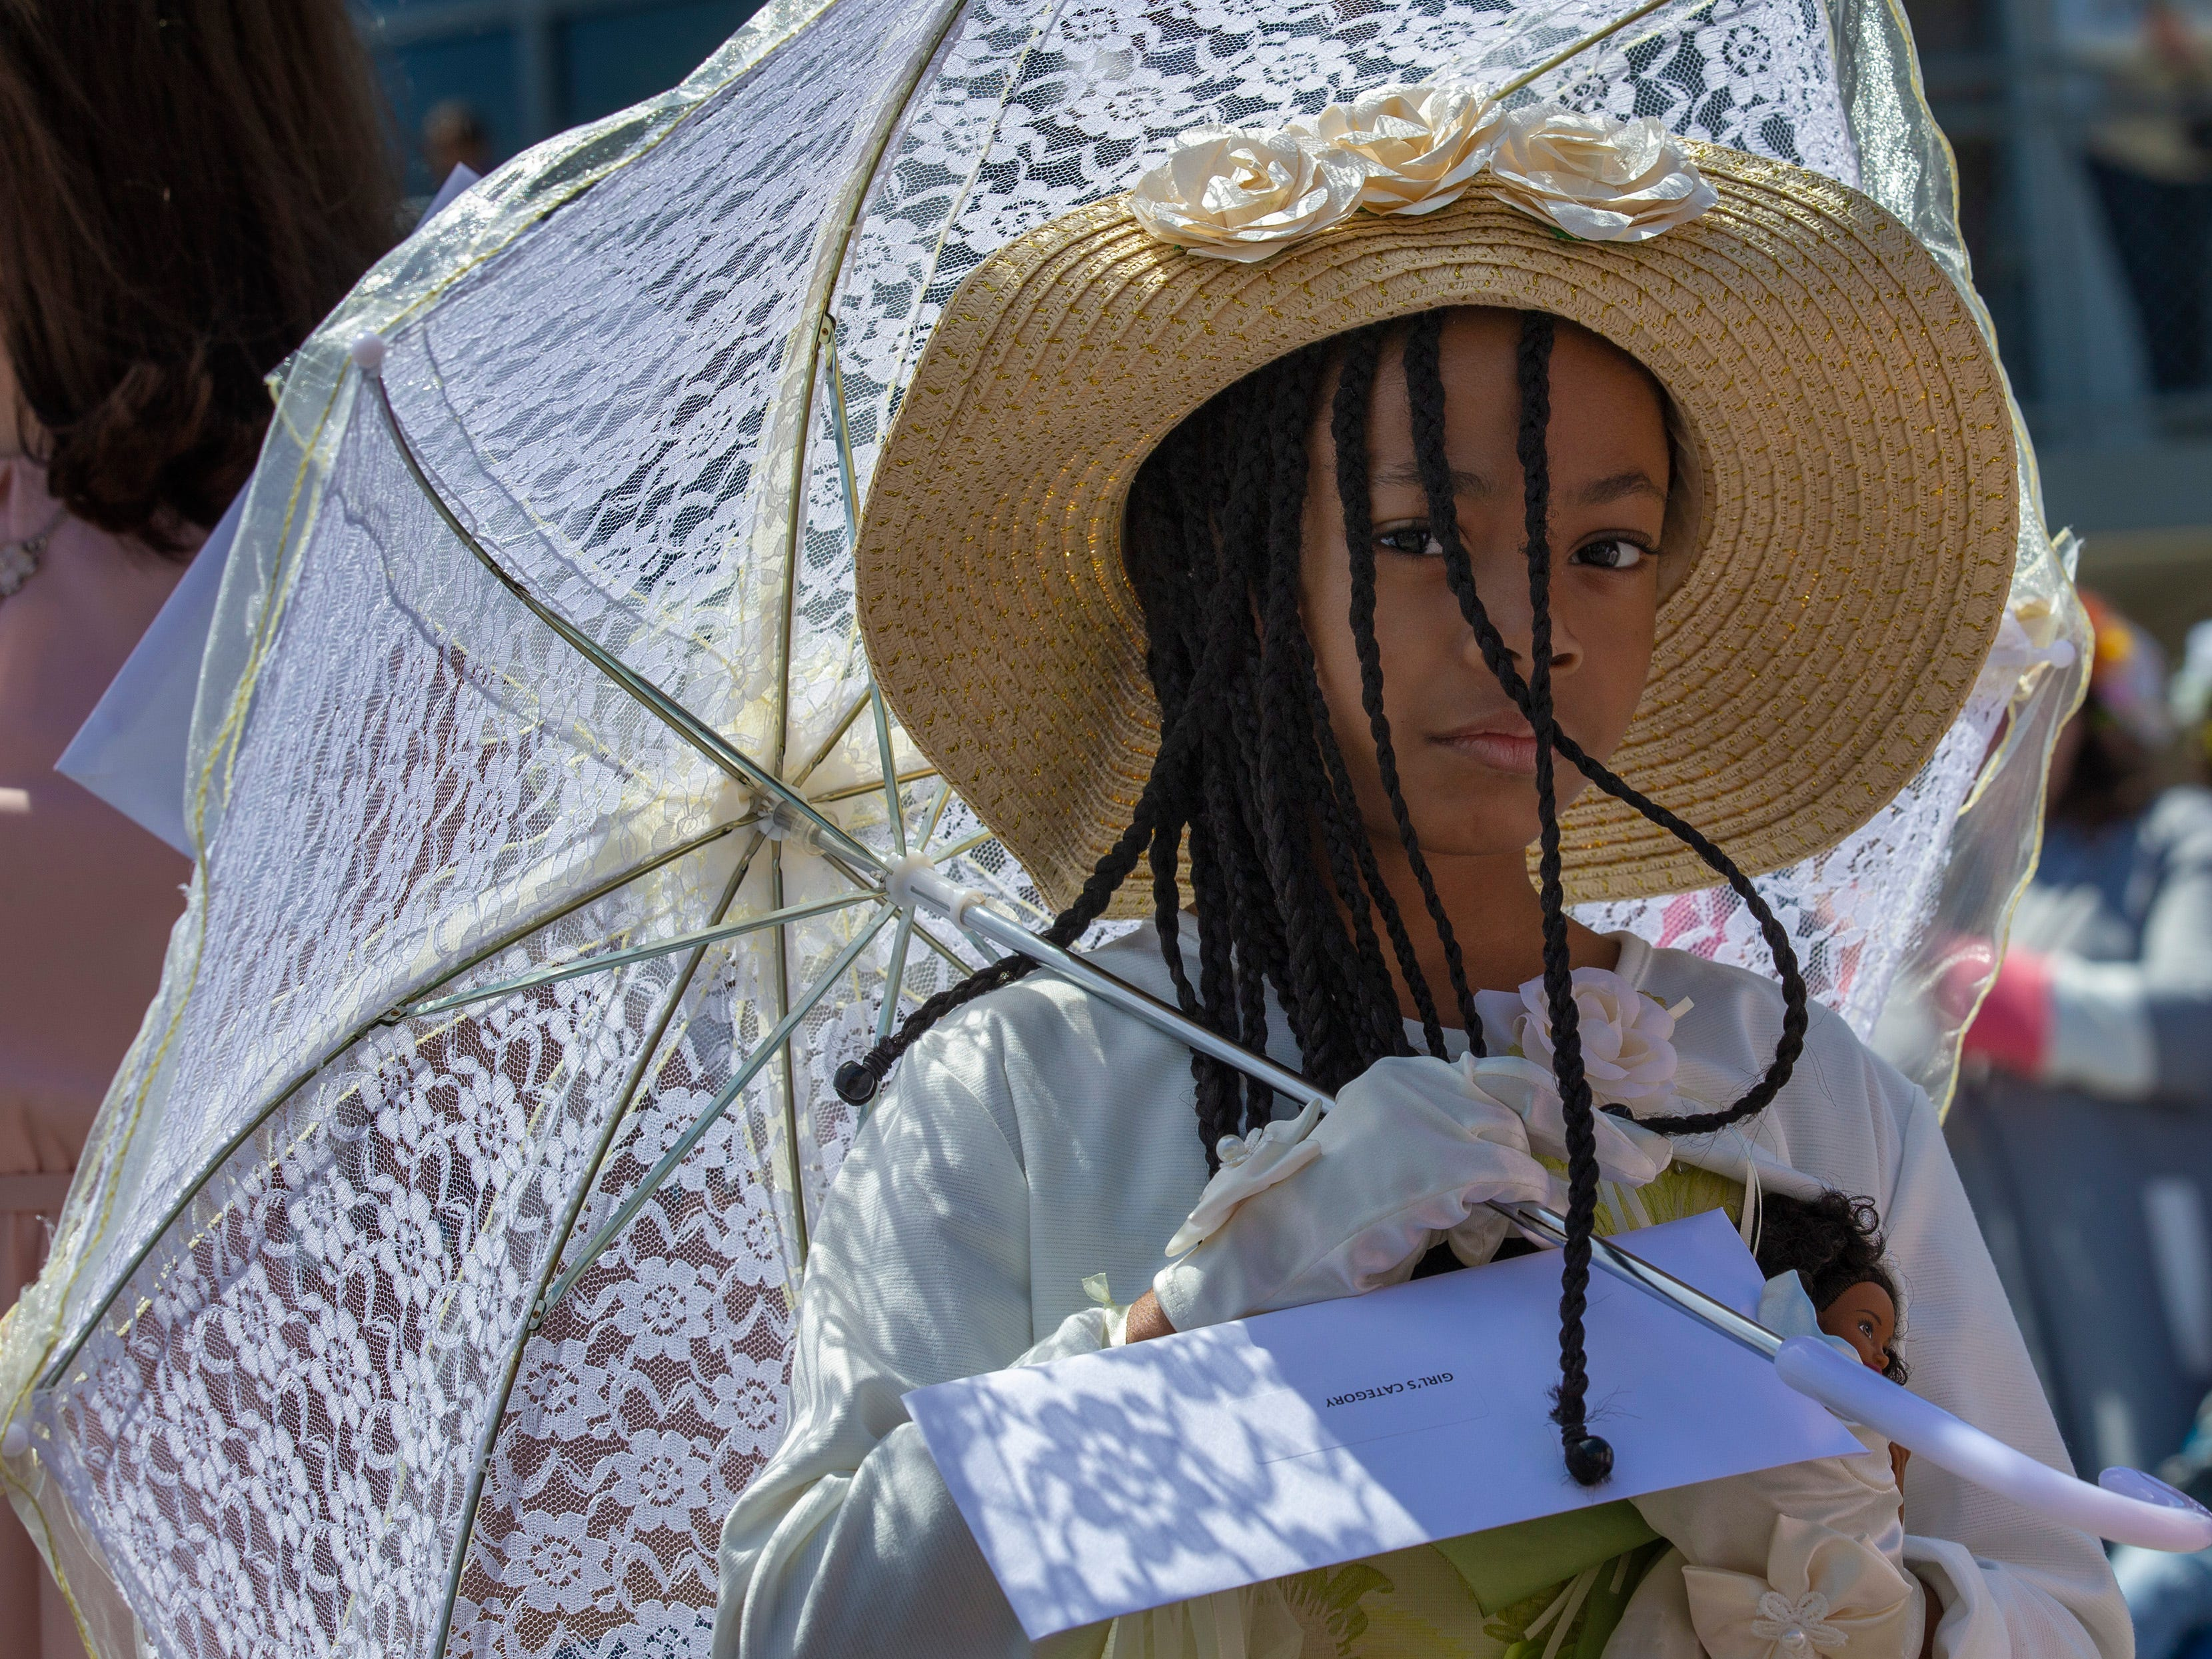 Alia Smith, 6, of Neptune during girls judging at the Asbury Park Easter Parade on the boardwalk outside the Paramount Theatre in Asbury Park on April 21, 2019.